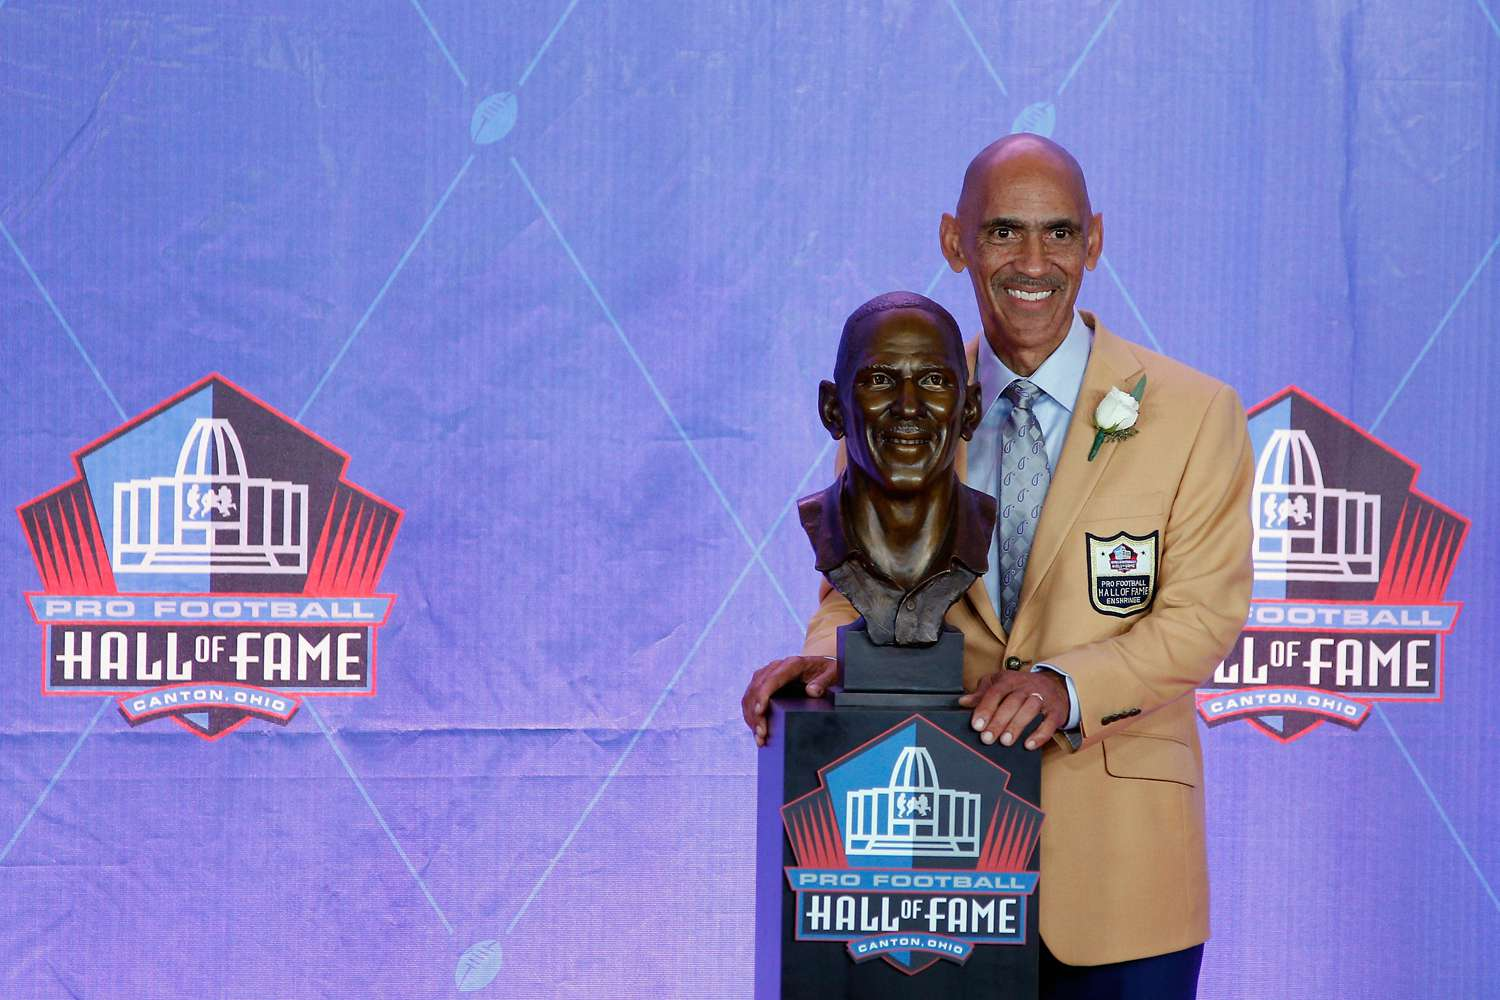 Tony Dungy at NFL Hall of Fame Enshrinement Ceremony